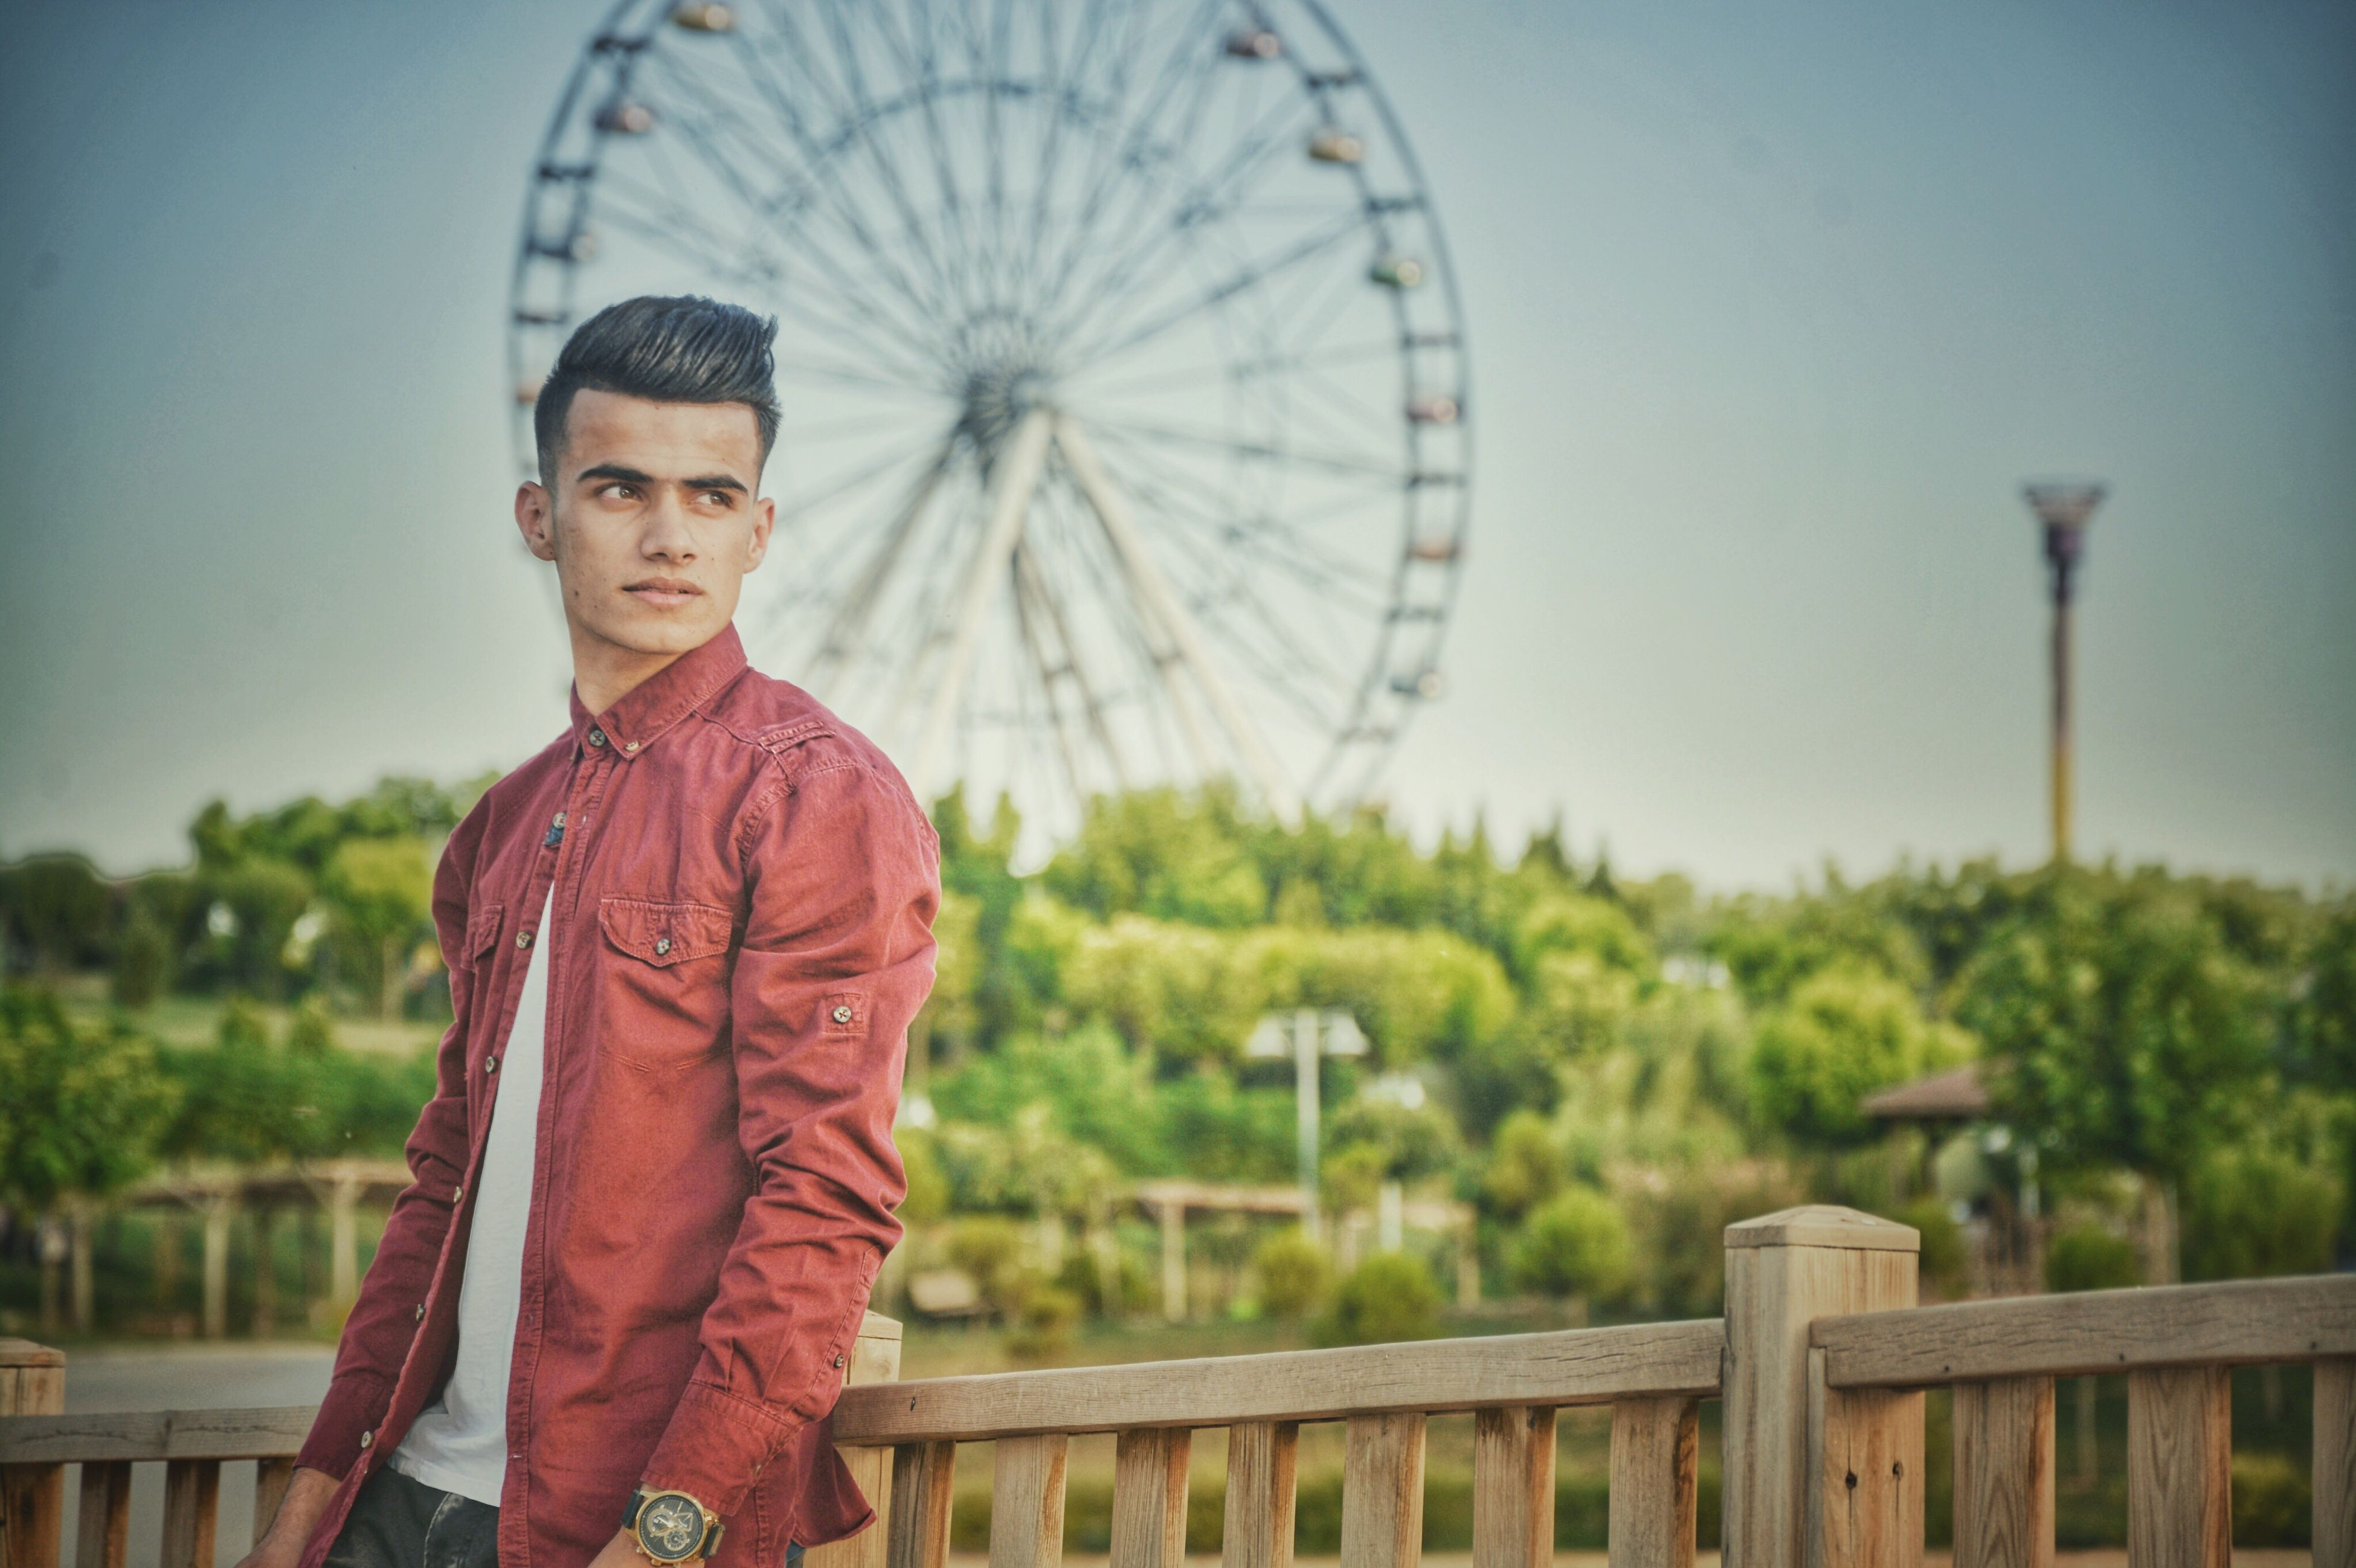 real people, casual clothing, looking at camera, focus on foreground, leisure activity, day, standing, front view, portrait, outdoors, lifestyles, one person, ferris wheel, young men, young adult, clear sky, sky, architecture, tree